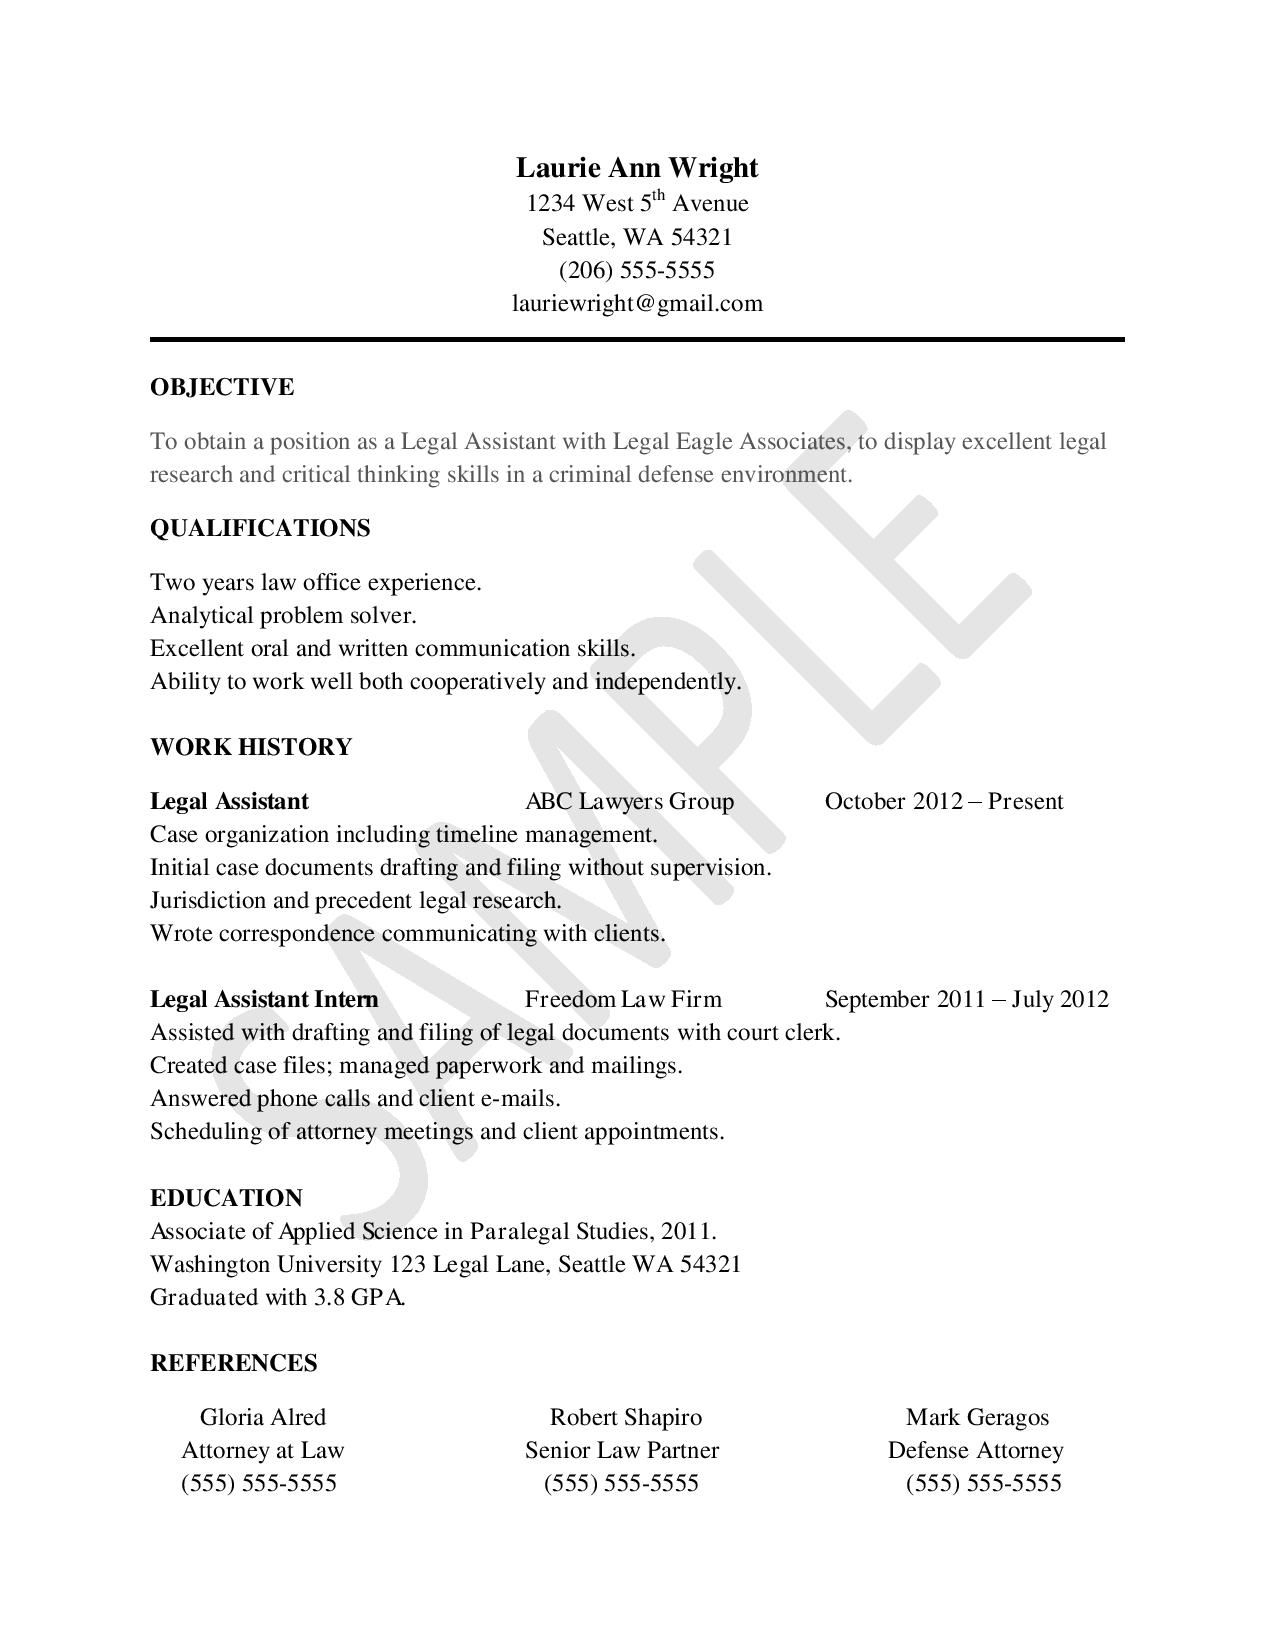 legal assistant resume cover letter Sarah worker 14 apple lane richmond, va 44323 sworker@emailaddresscom (999)999-9999 november 4, 2009 jones law firm julie reynolds 13 justice way richmond.